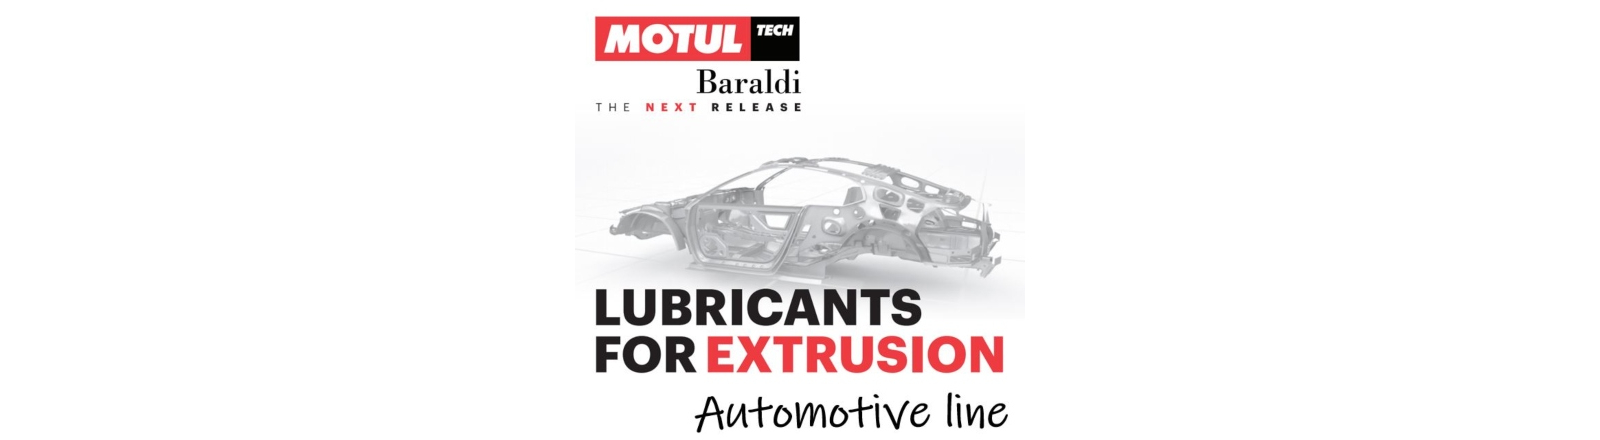 AUTOMOTIVE LINE: THE LUBRICANTS FOR THE MOST DEMANDING PROFILES